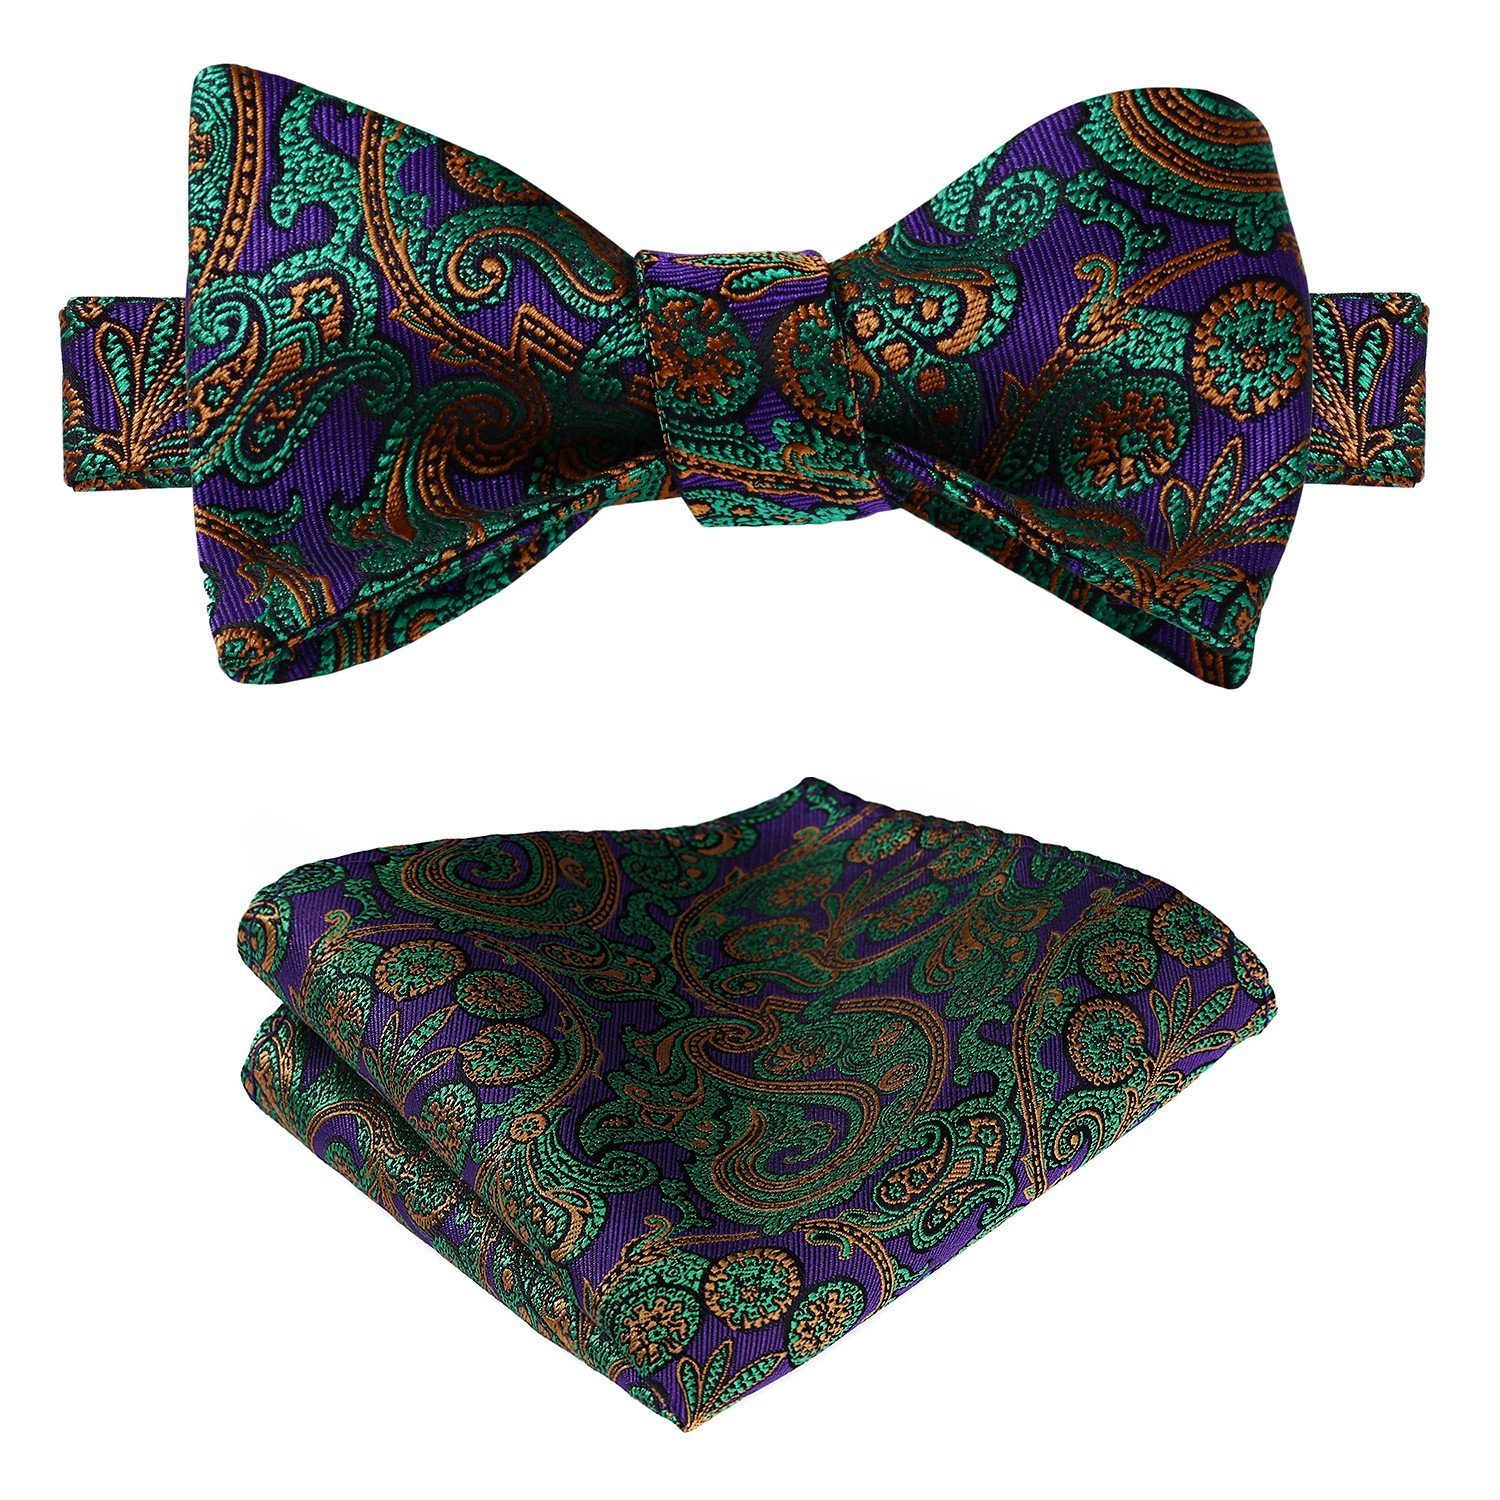 HISDERN Men's Paisley Floral Jacquard Wedding Party Self Bow Tie & Pocket Square Set BF3021PS-2